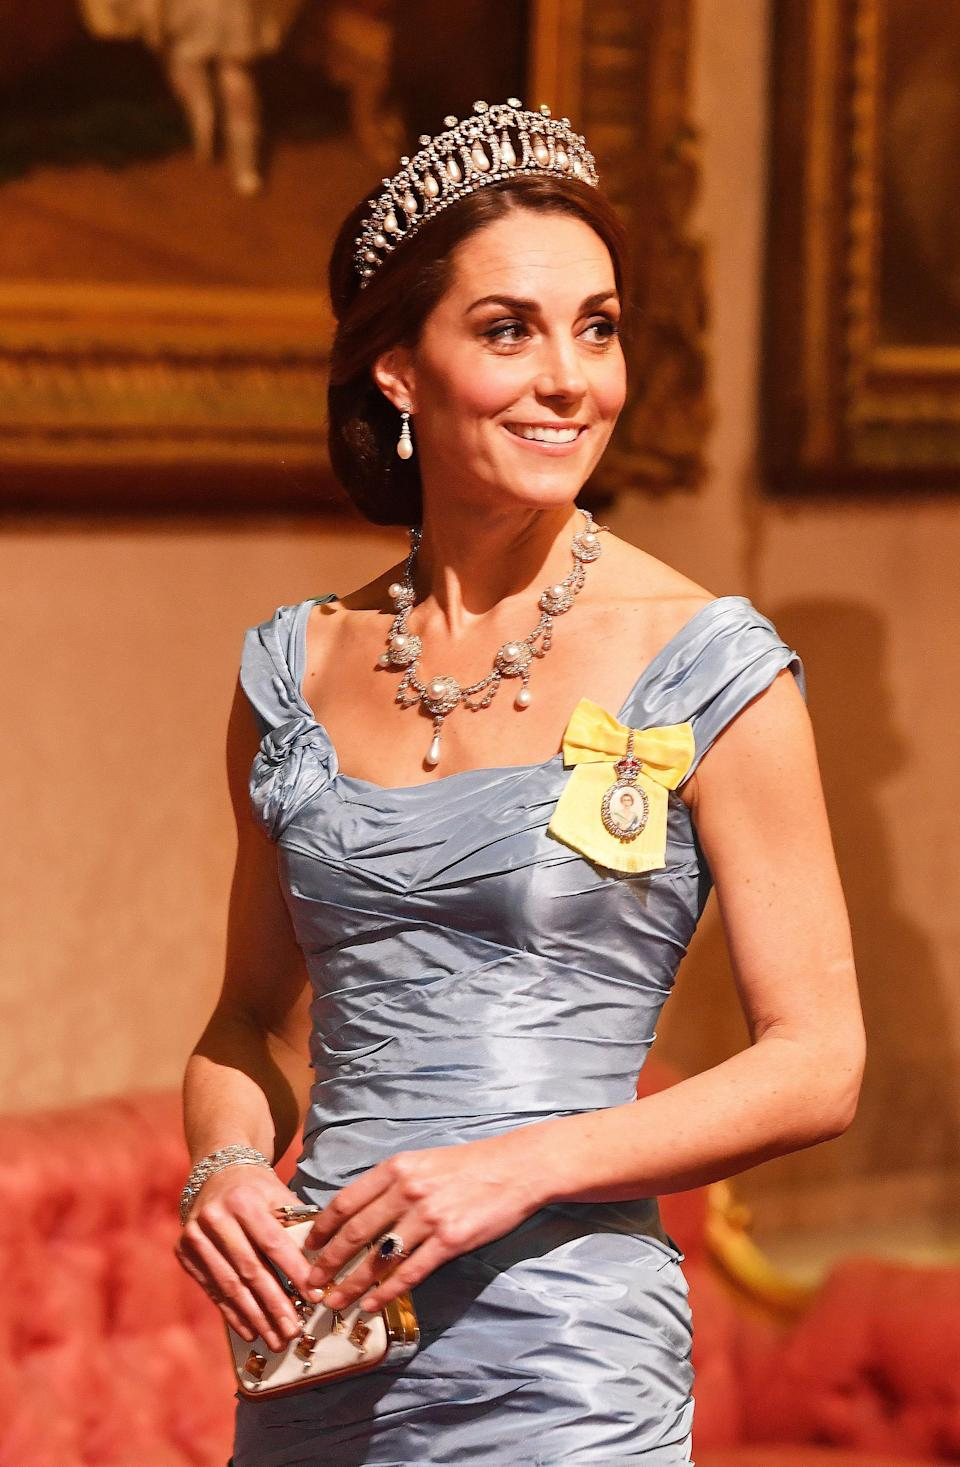 There's a special meaning behind the Duchess of Cambridge's brooch she wore on Tuesday night. Source: Getty